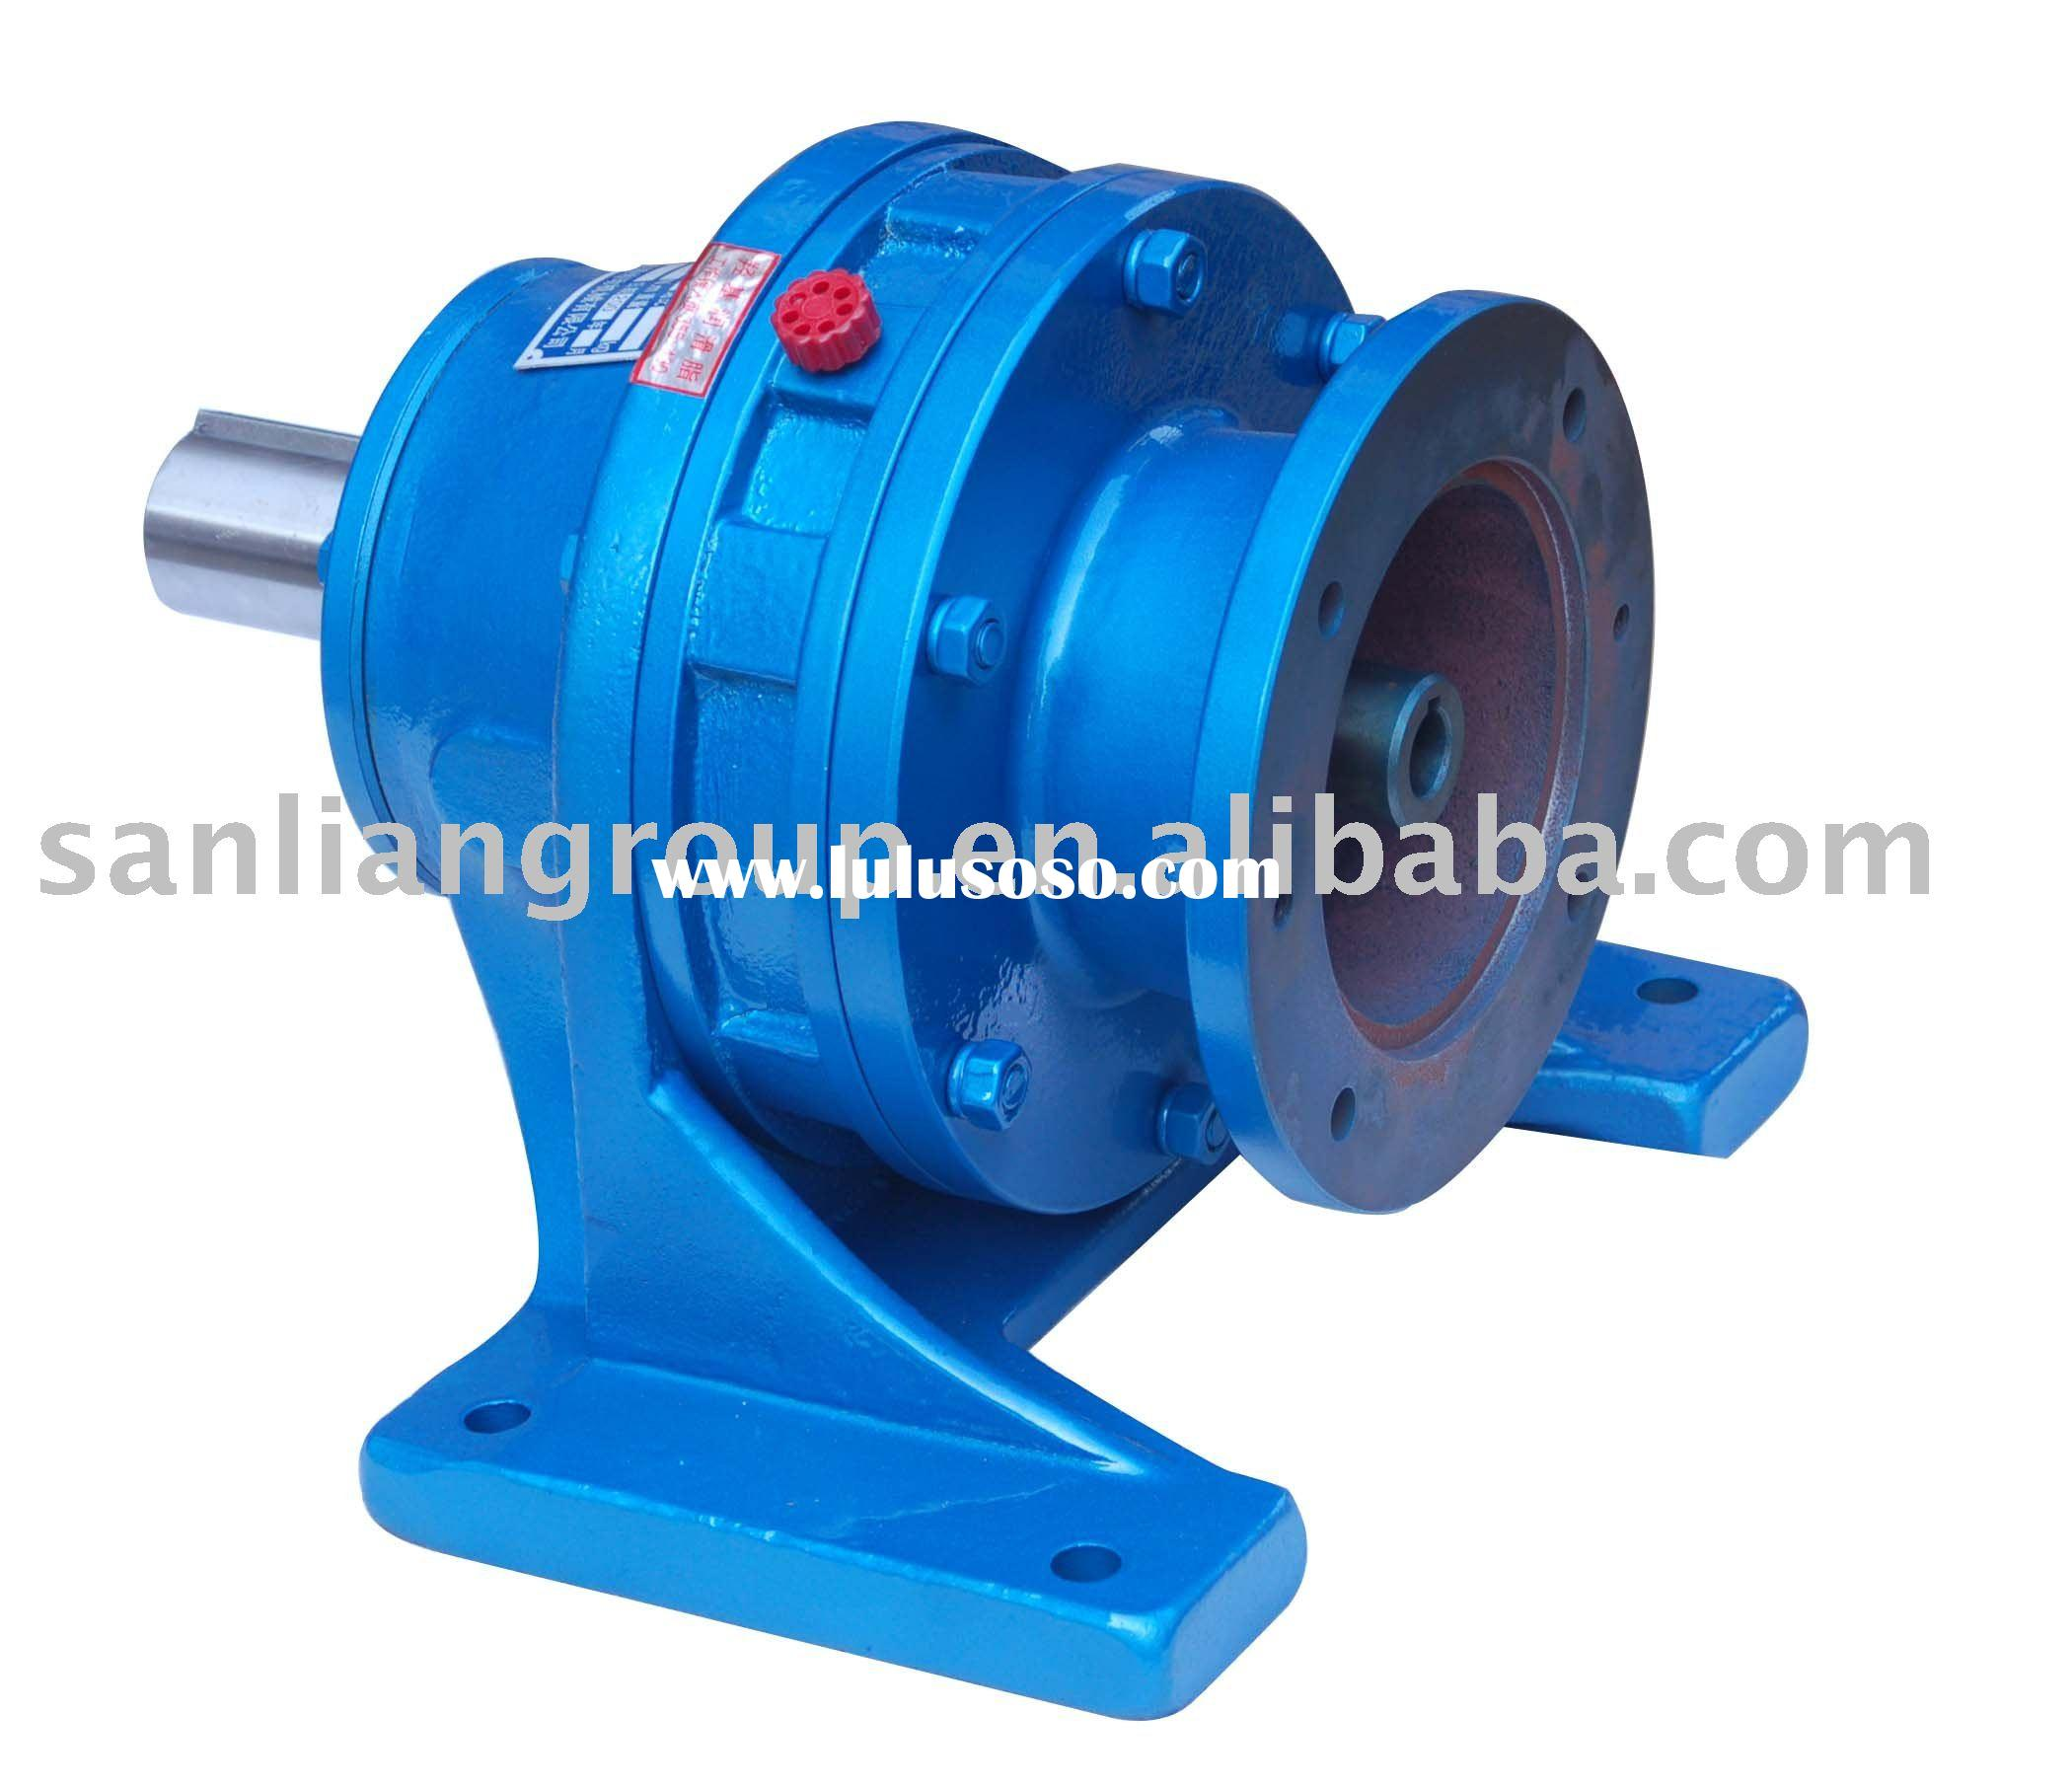 Cycloidal Pin-wheel Reducer(reducer,speed transmission,speed reducer,reductor,gearmotor,gearbox)